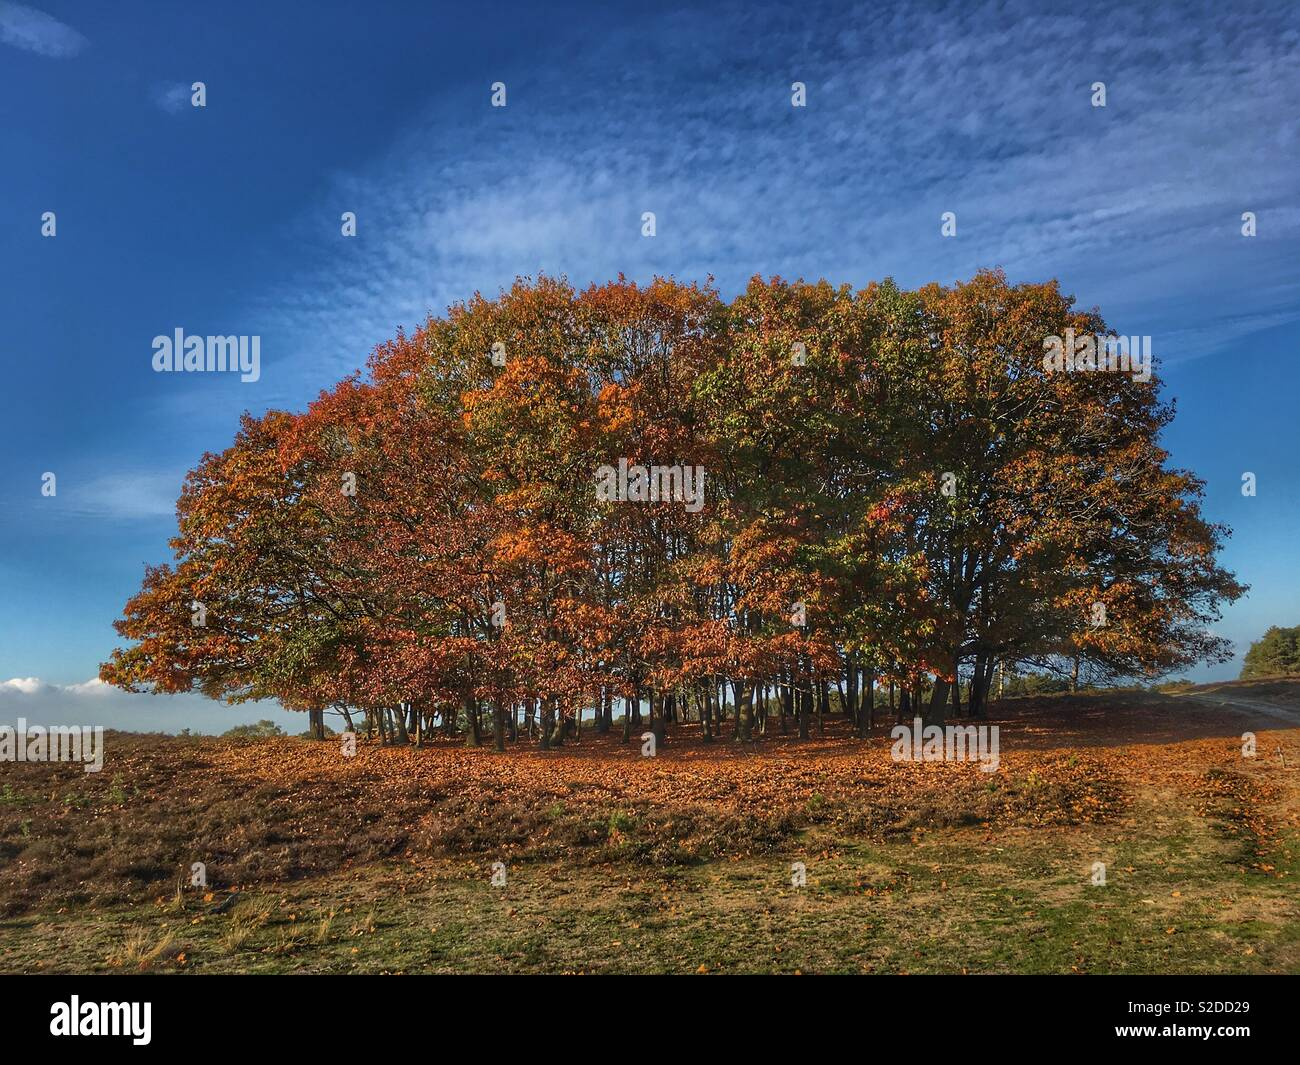 Autumn arrived. Beech and chestnut trees letting it all go, covering the heather with their leaves. - Stock Image